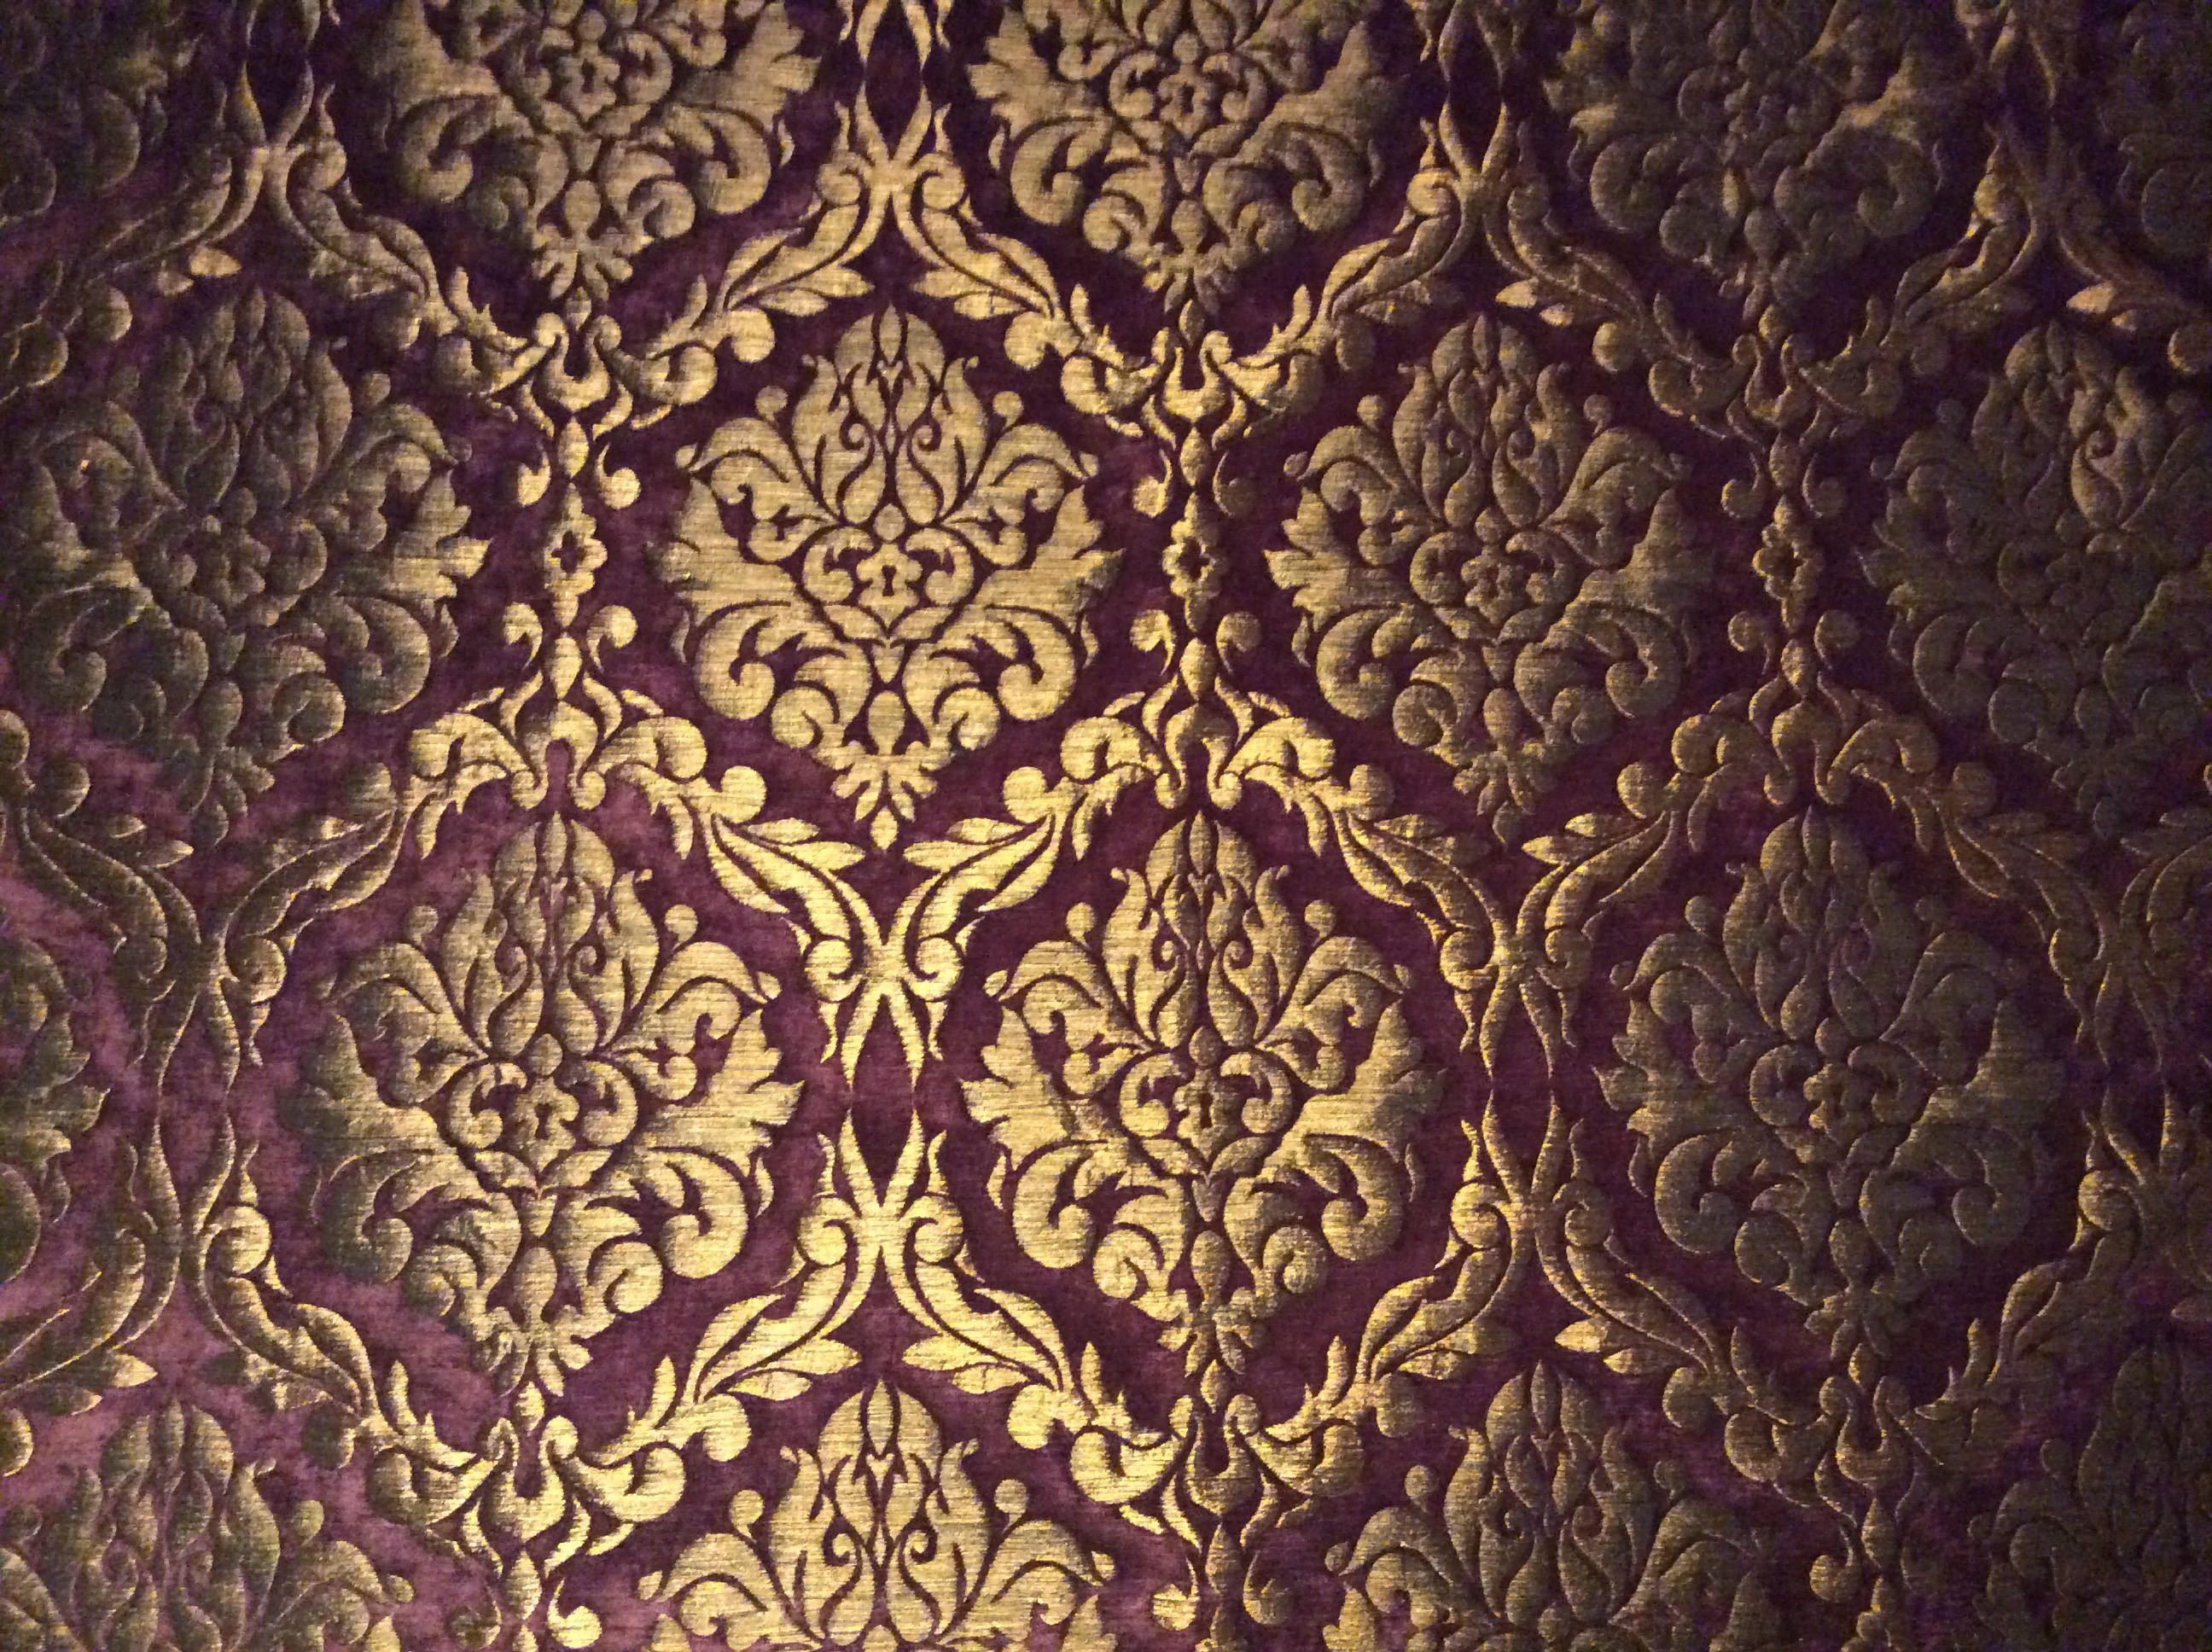 Heavy Velvet Brocade Woven Violet Gold Bronze Historical Ornaments Medieval Baroque Velvet Brocade Woven Fabric Fabric Fabric Medieval In 2020 Historical Ornaments Medieval Decor Fabric Decor